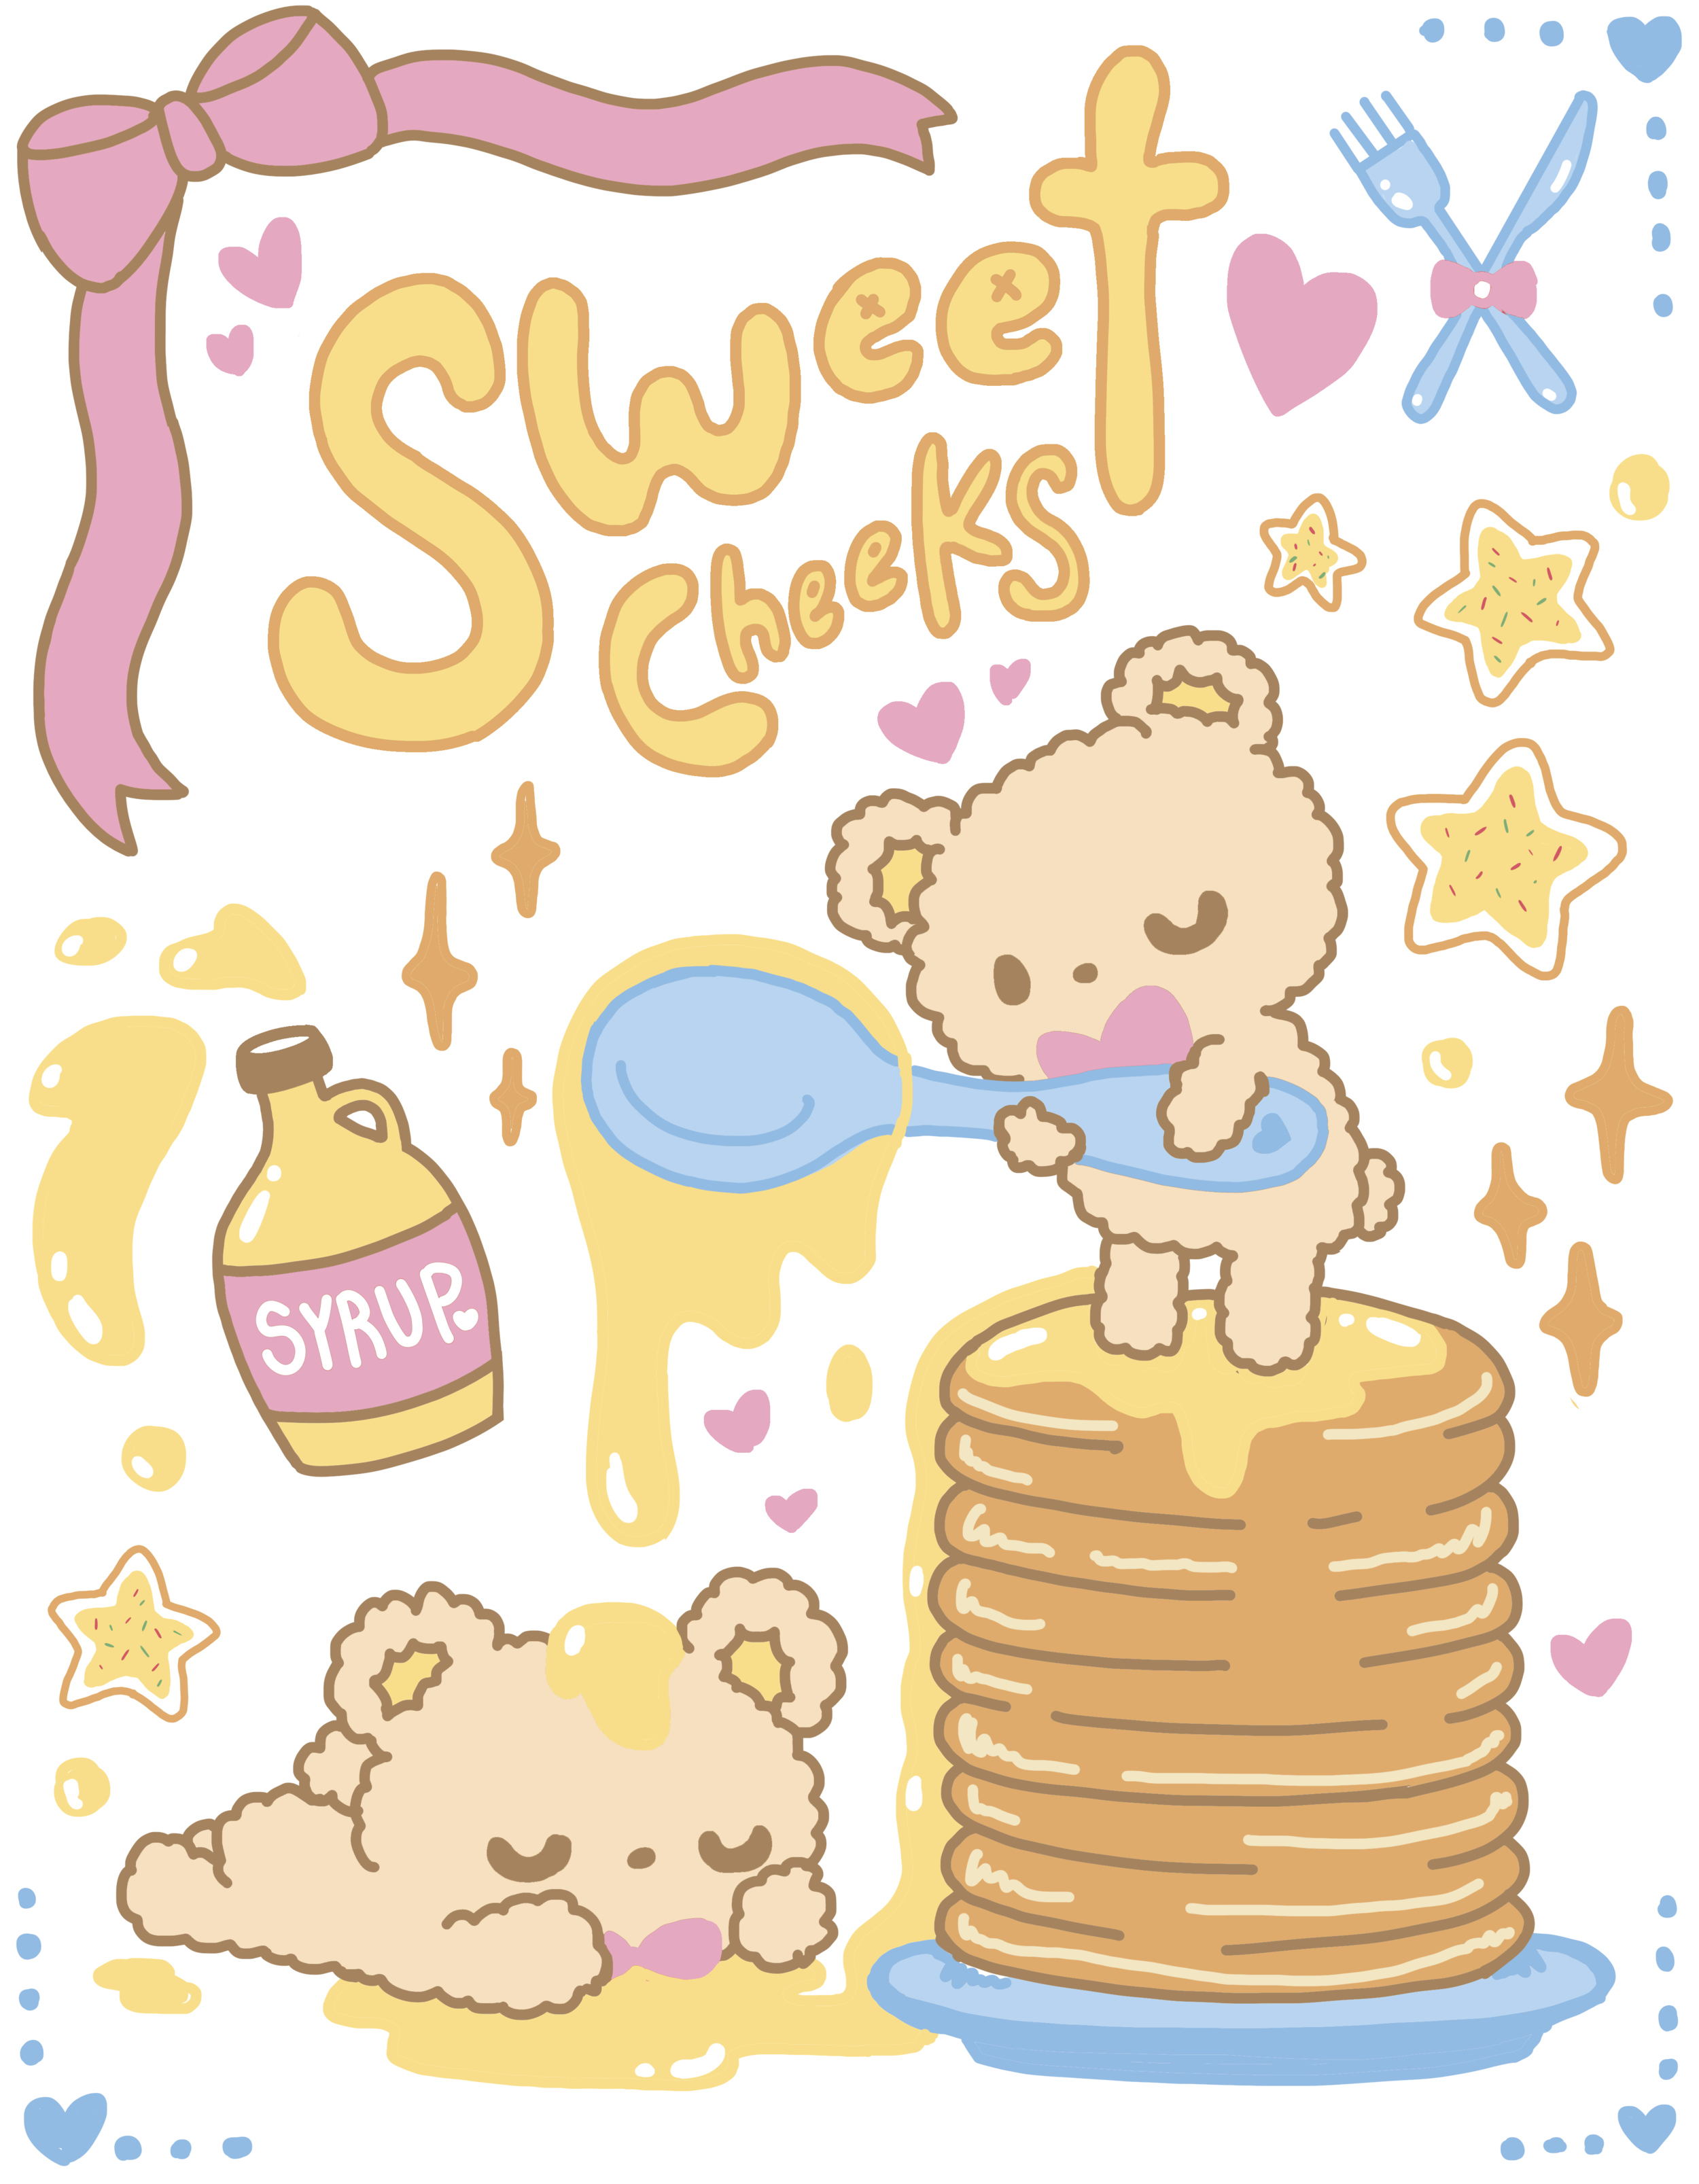 Sweet Cheeks Illustration